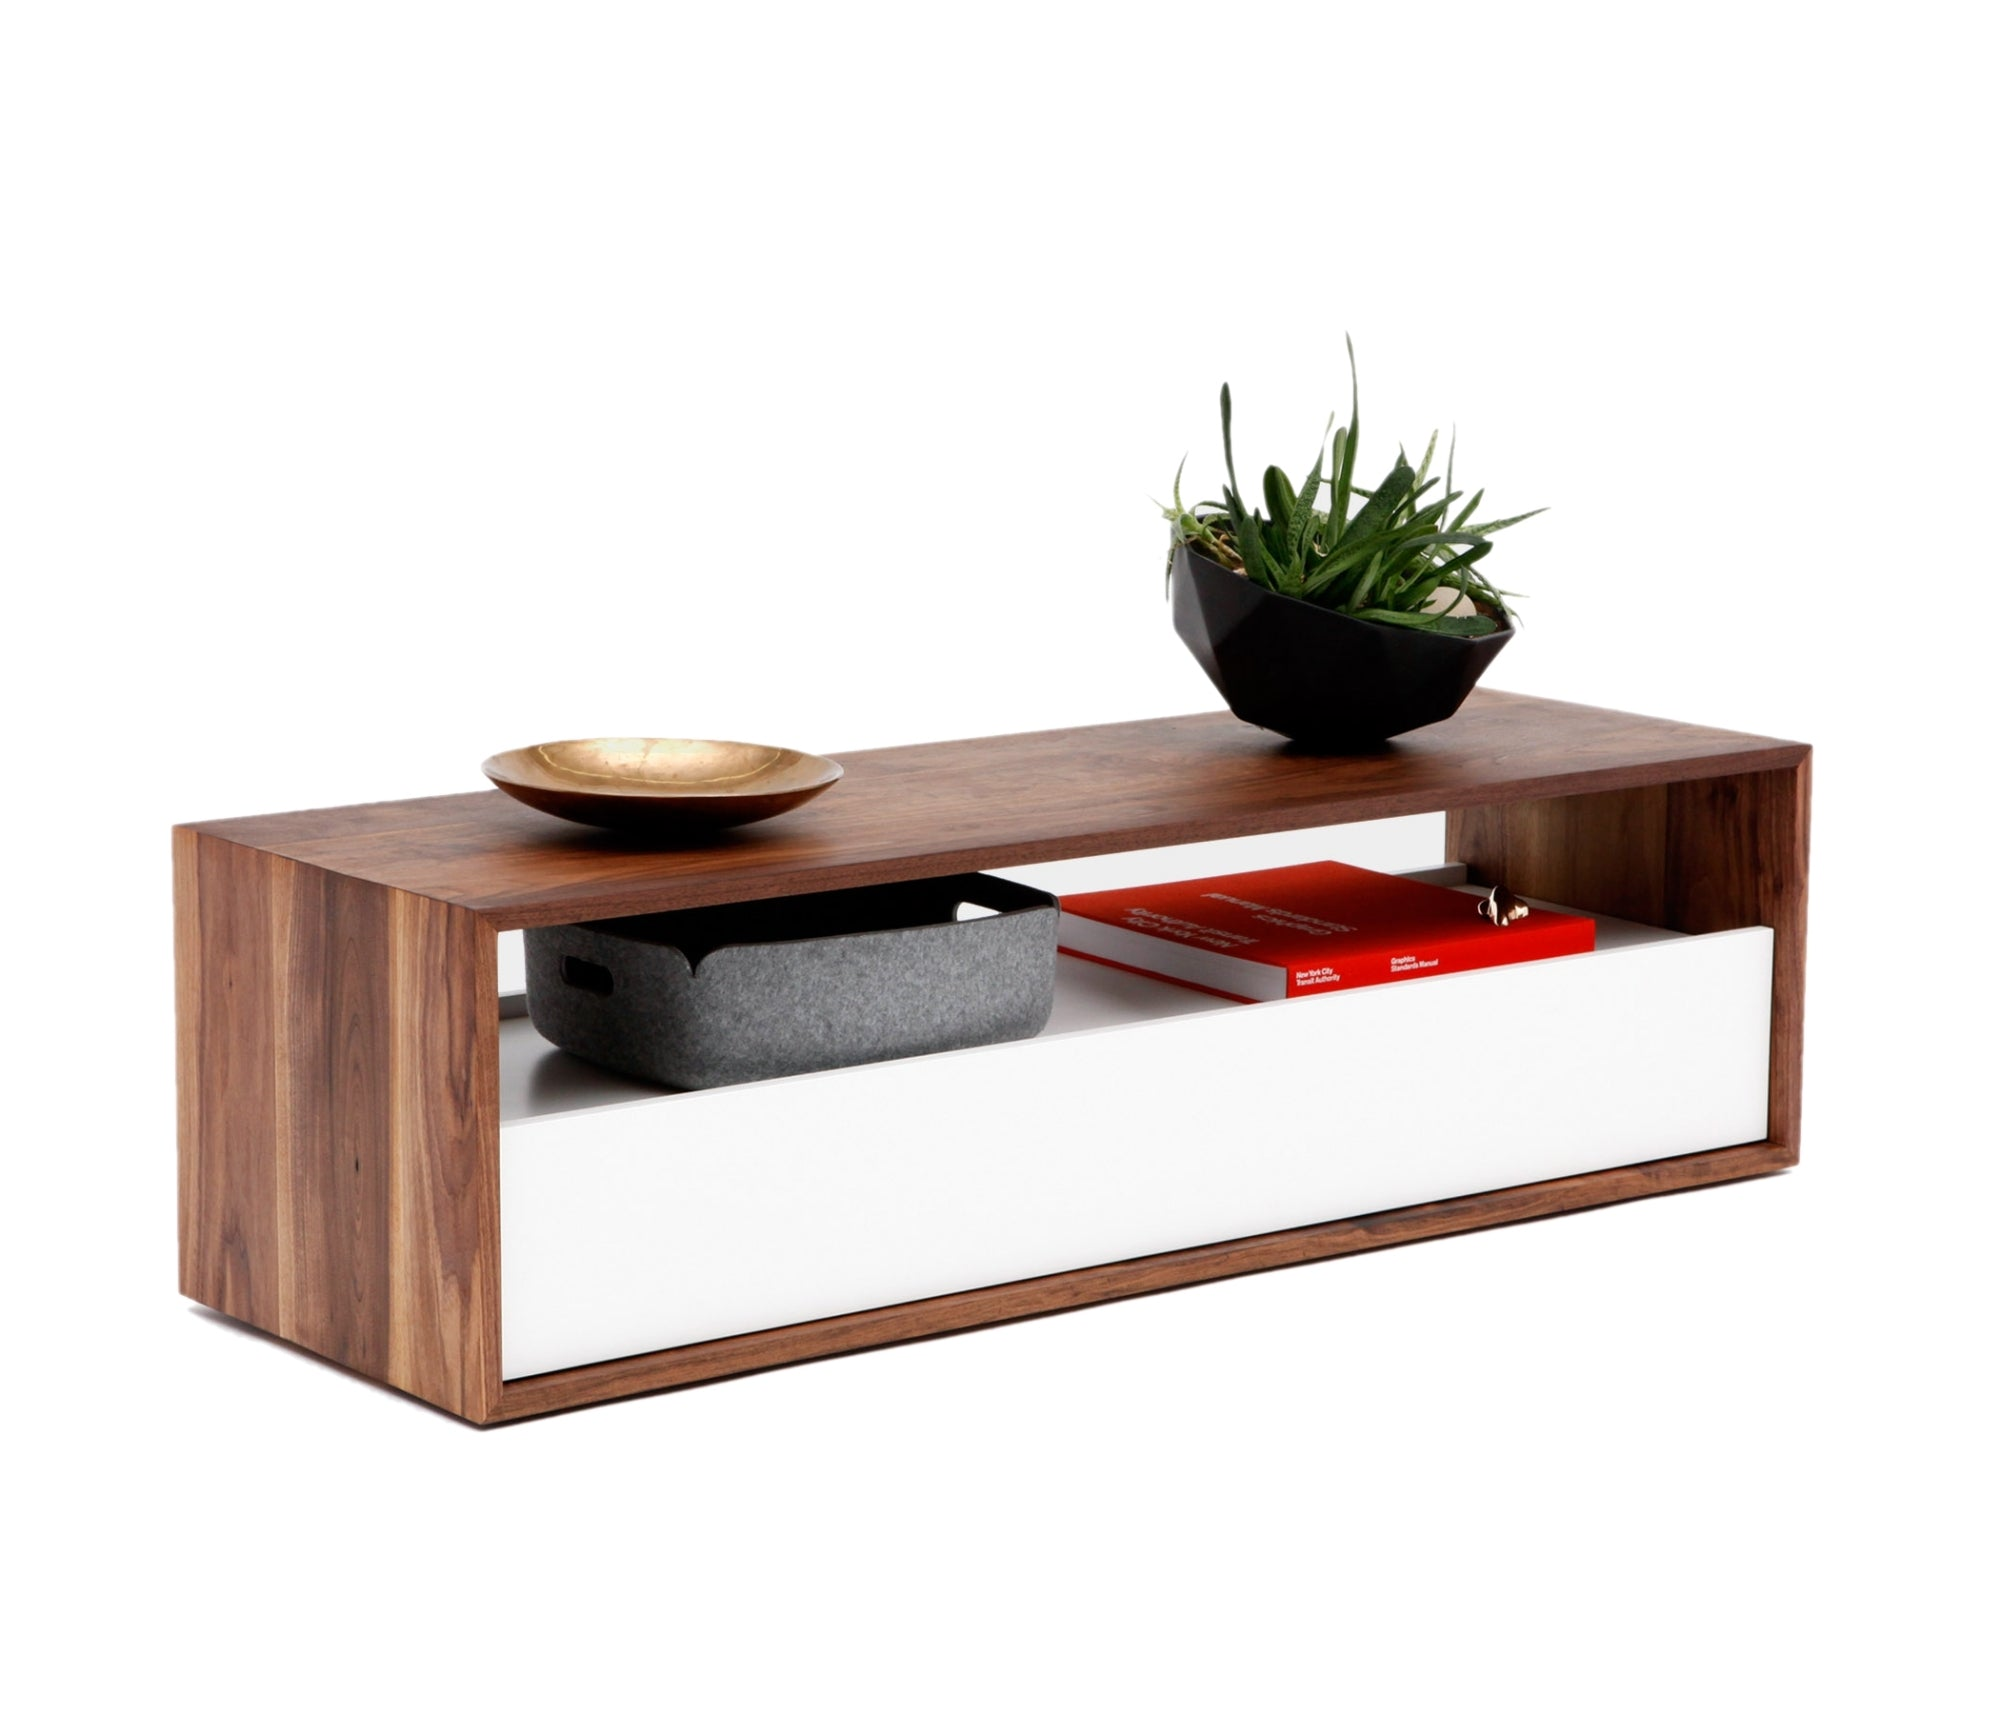 Artless THN 325 Console Console drawer